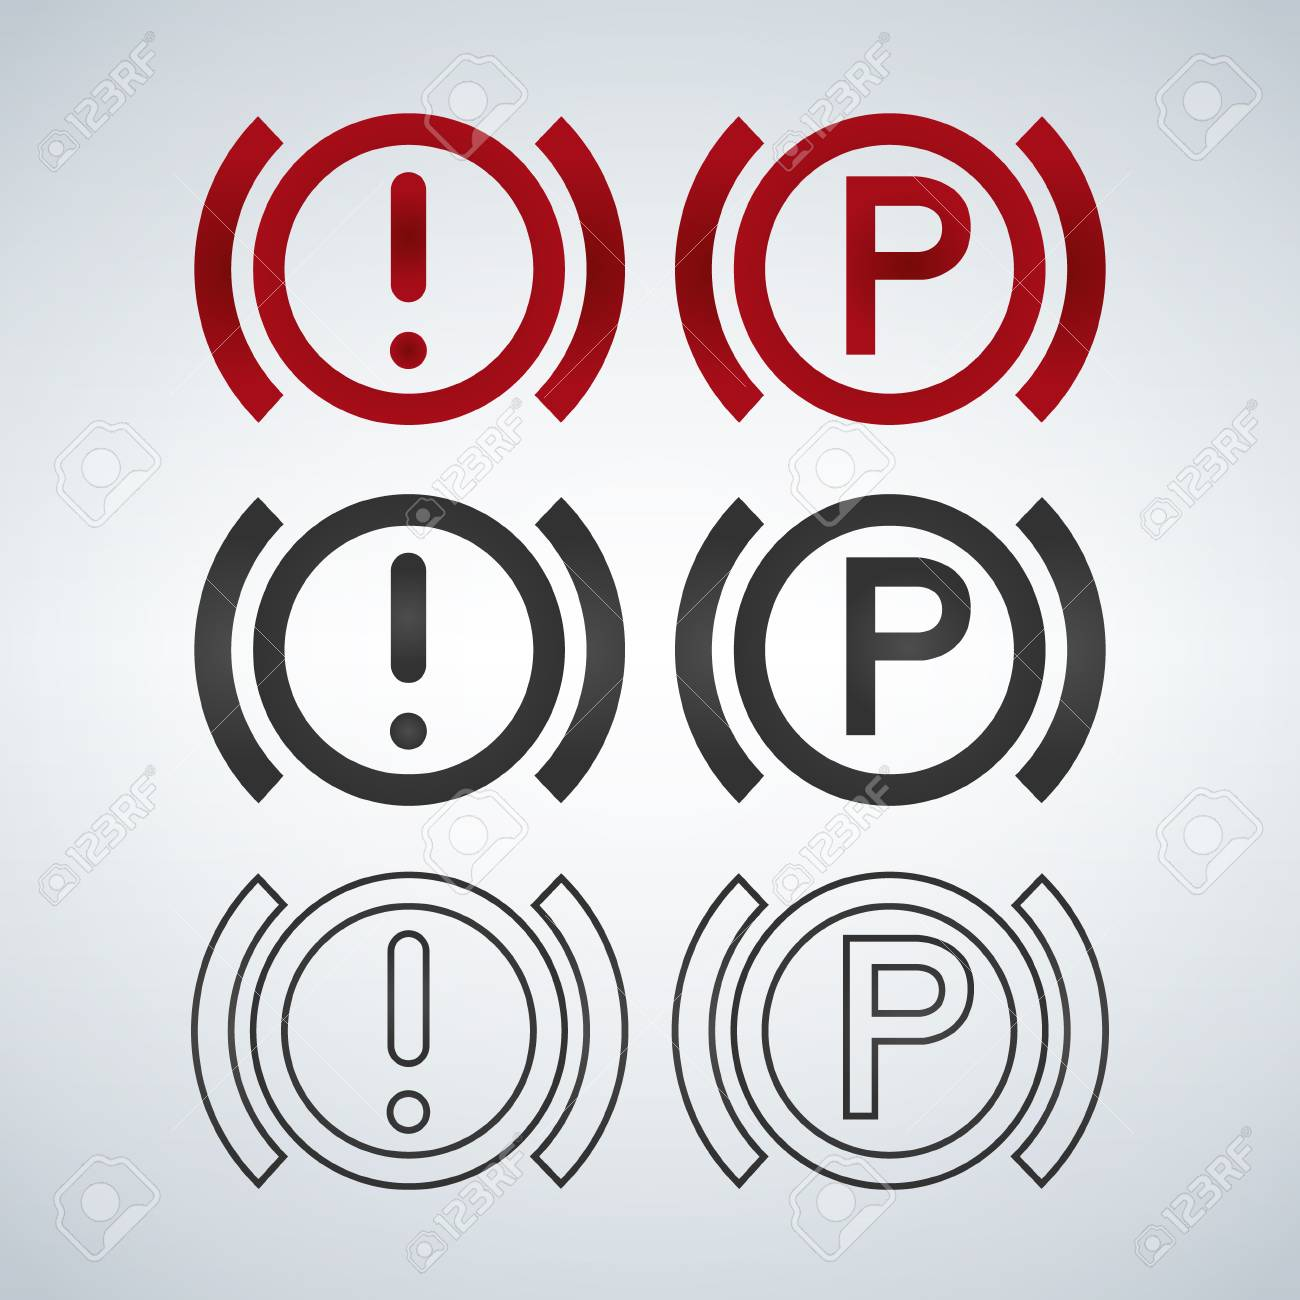 Sign On The Car Dashboard Parking Icon And Exclemation Warning - Car image sign of dashboardcar dashboard icons stock images royaltyfree imagesvectors